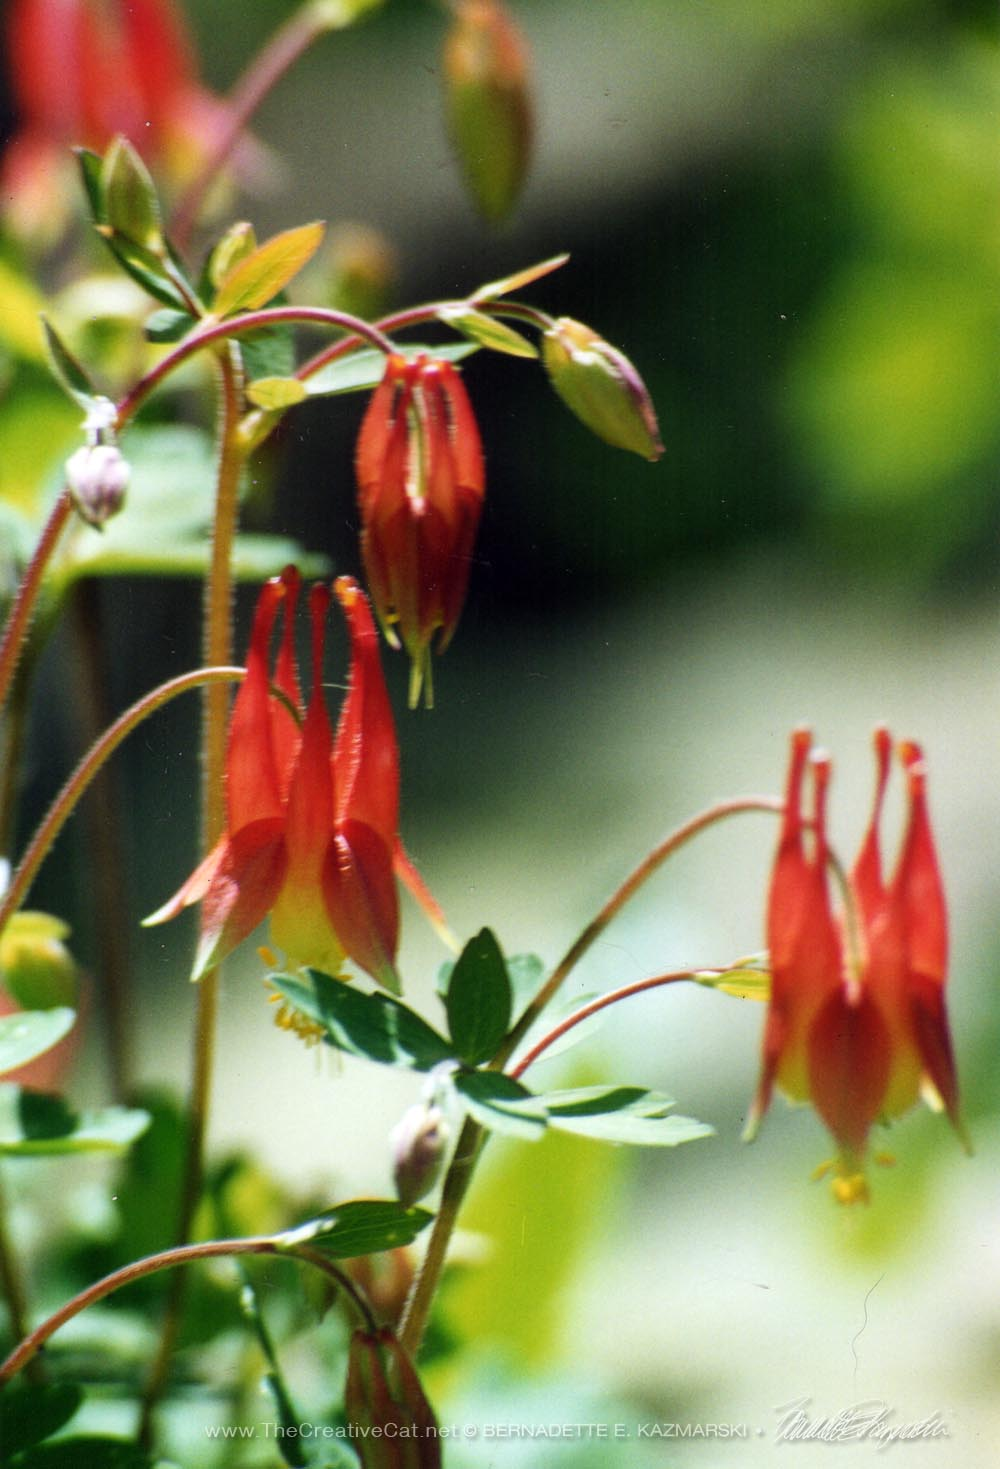 Native wild columbines, trying to capture their buoyant blooming habit.